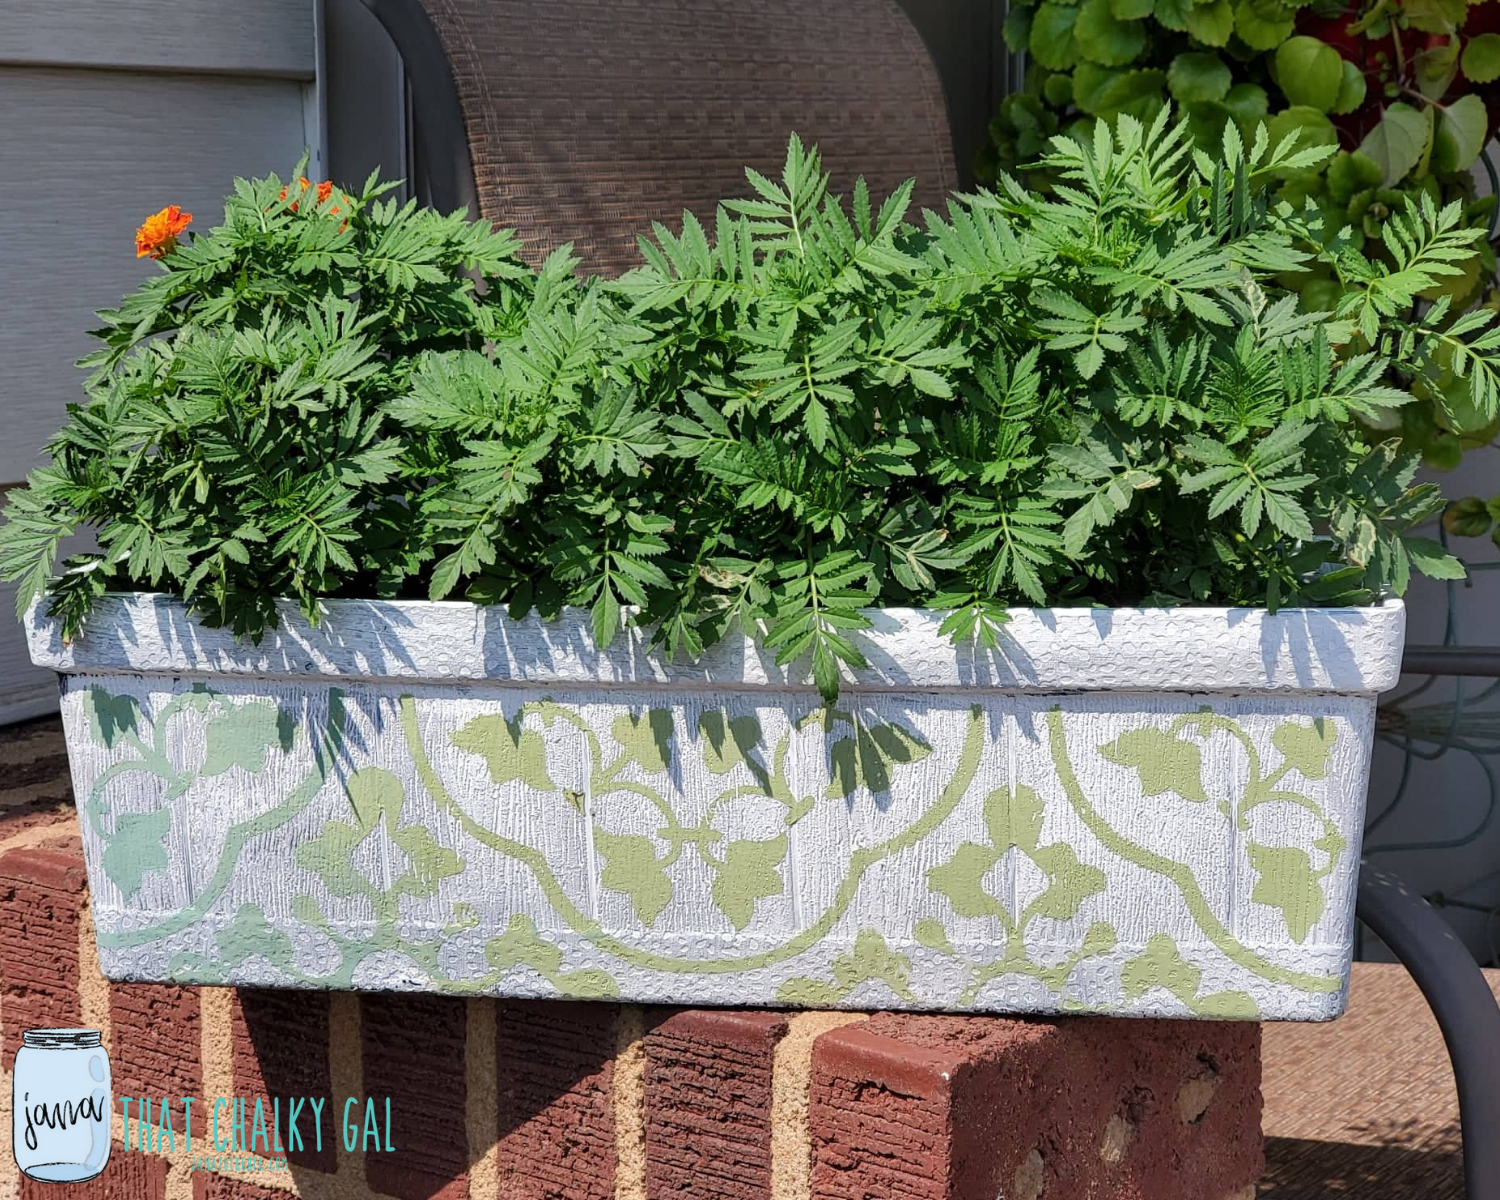 diy garden decor - chalk couture - garden projects - that chalky gal - talk chalky to me - transformed planter - planters - garden transformations